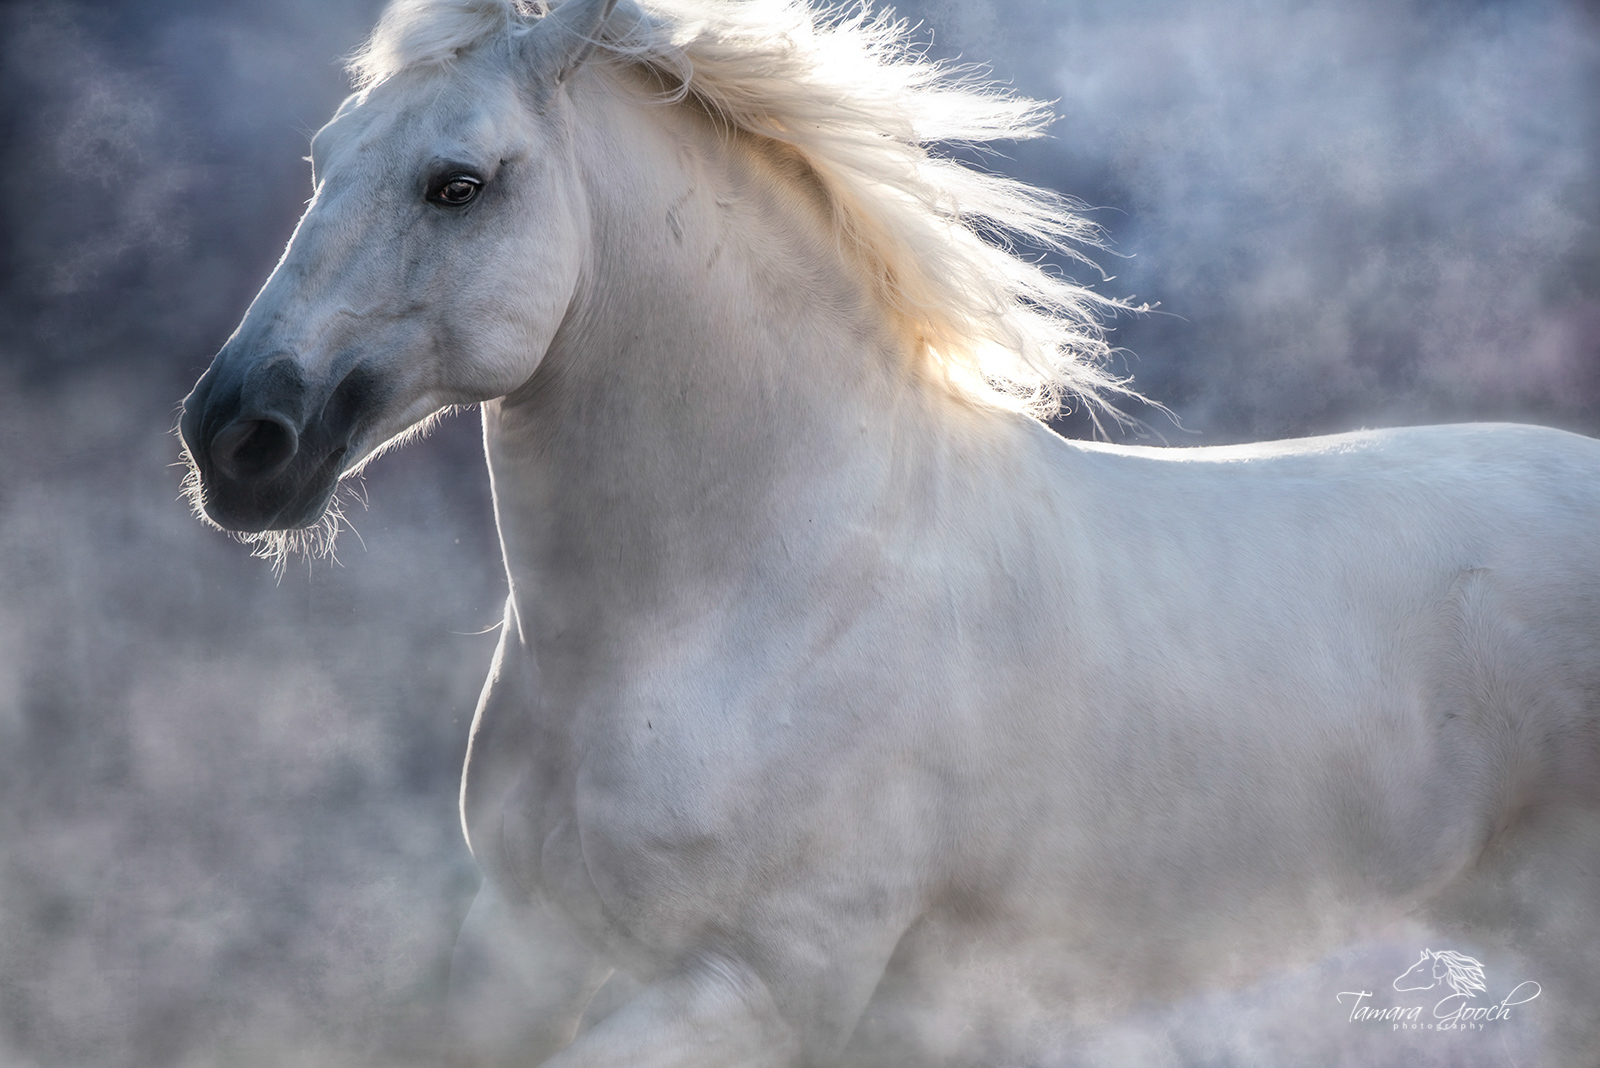 Fine Art Equine Photography Print. Limited Edition of 25. White Lusitano stallion at liberty surrounded by dust. Photographed...